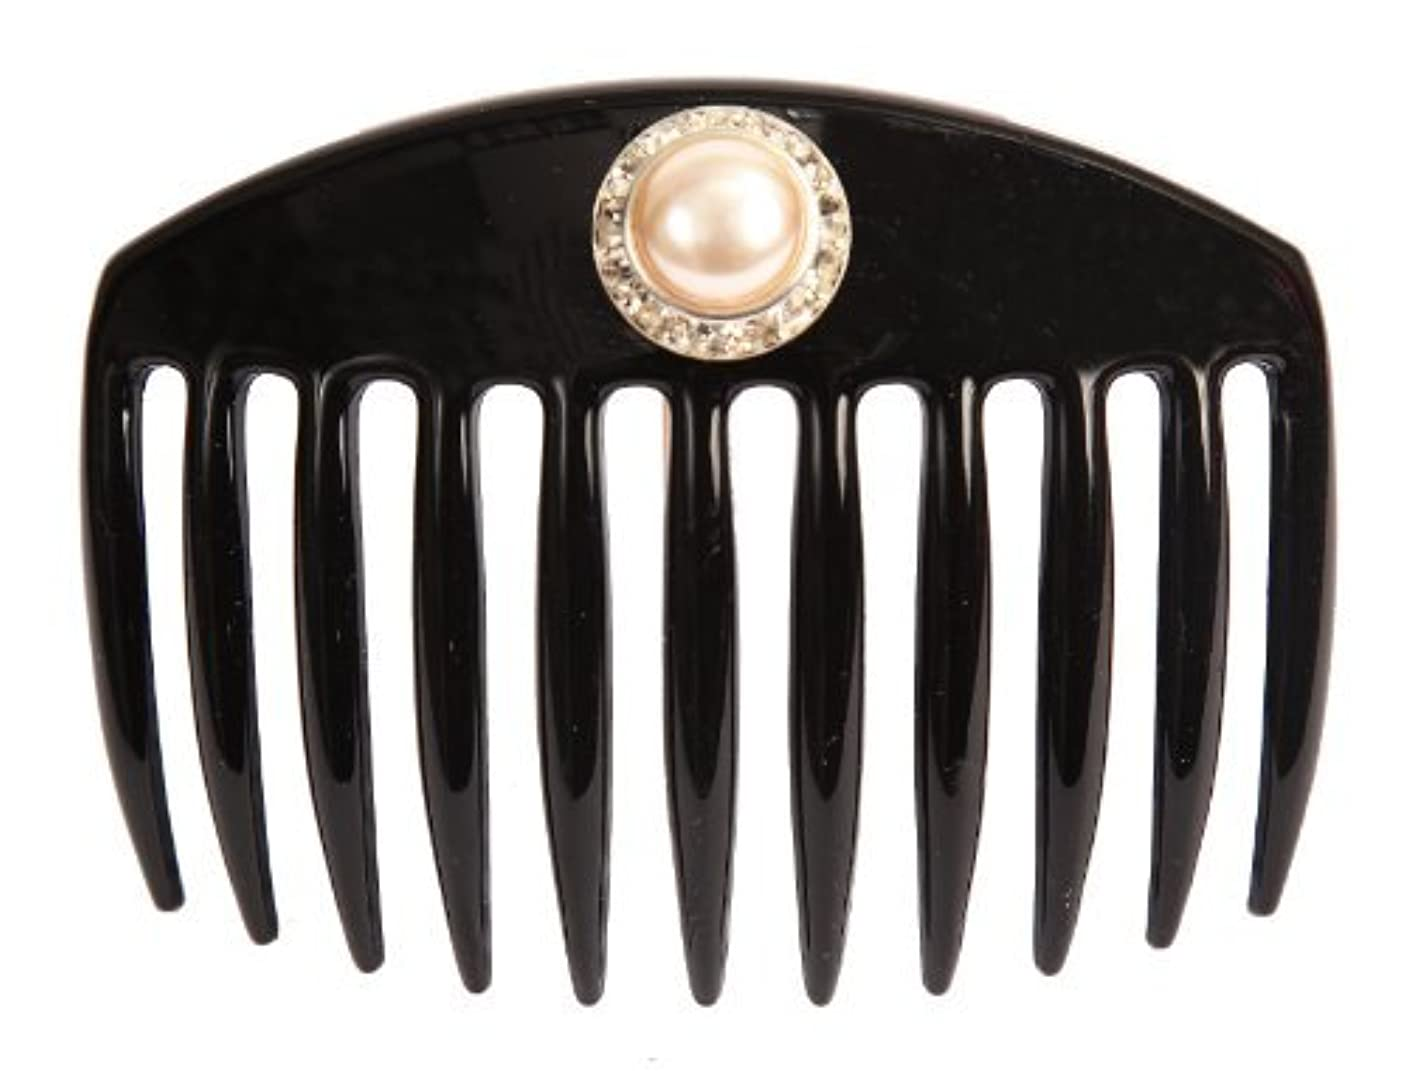 ベーリング海峡快い財産Caravan Hand Decorated French Comb with Large Pearl and Swarovski Stones In Silver Setting, Black.65 Ounce [並行輸入品]